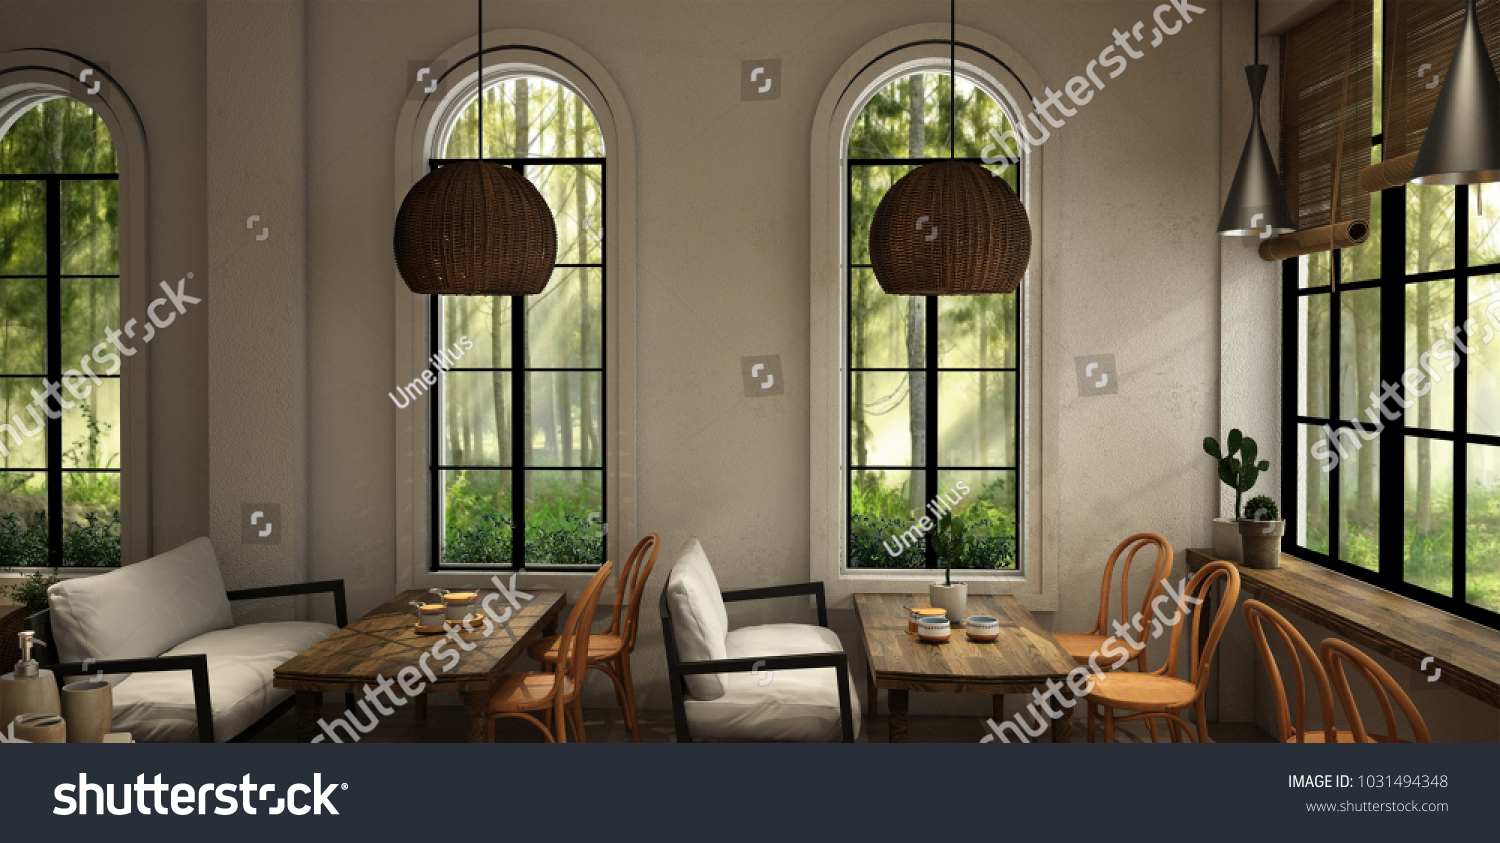 Interior design about cafe for dining area in modern style with plant chair table